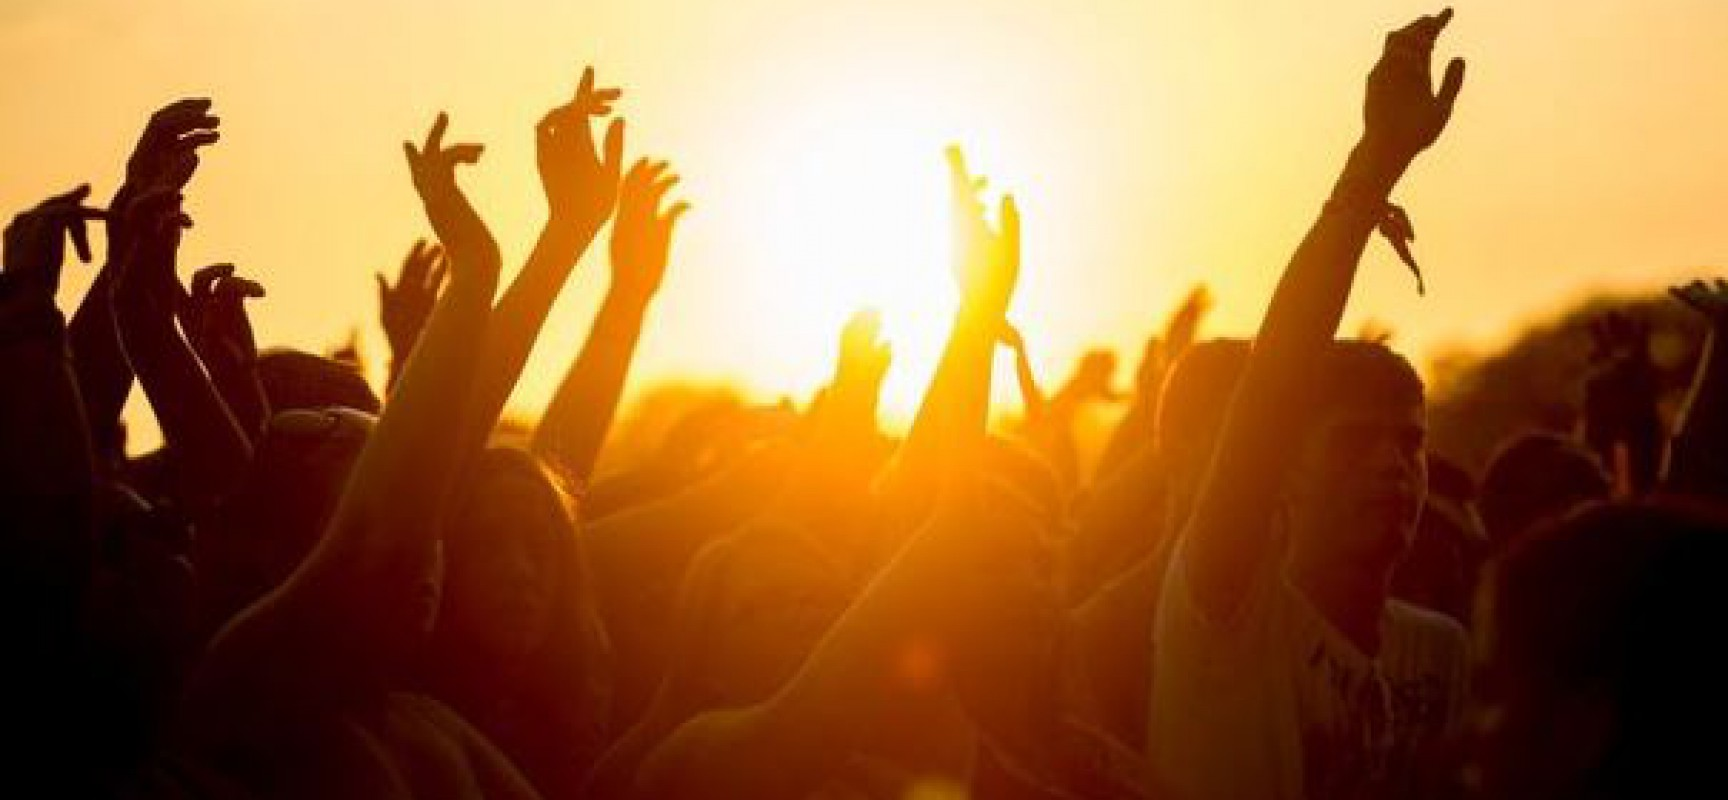 Summer Festival Survival Guide - Eventric Hands In The Air Rock Concert